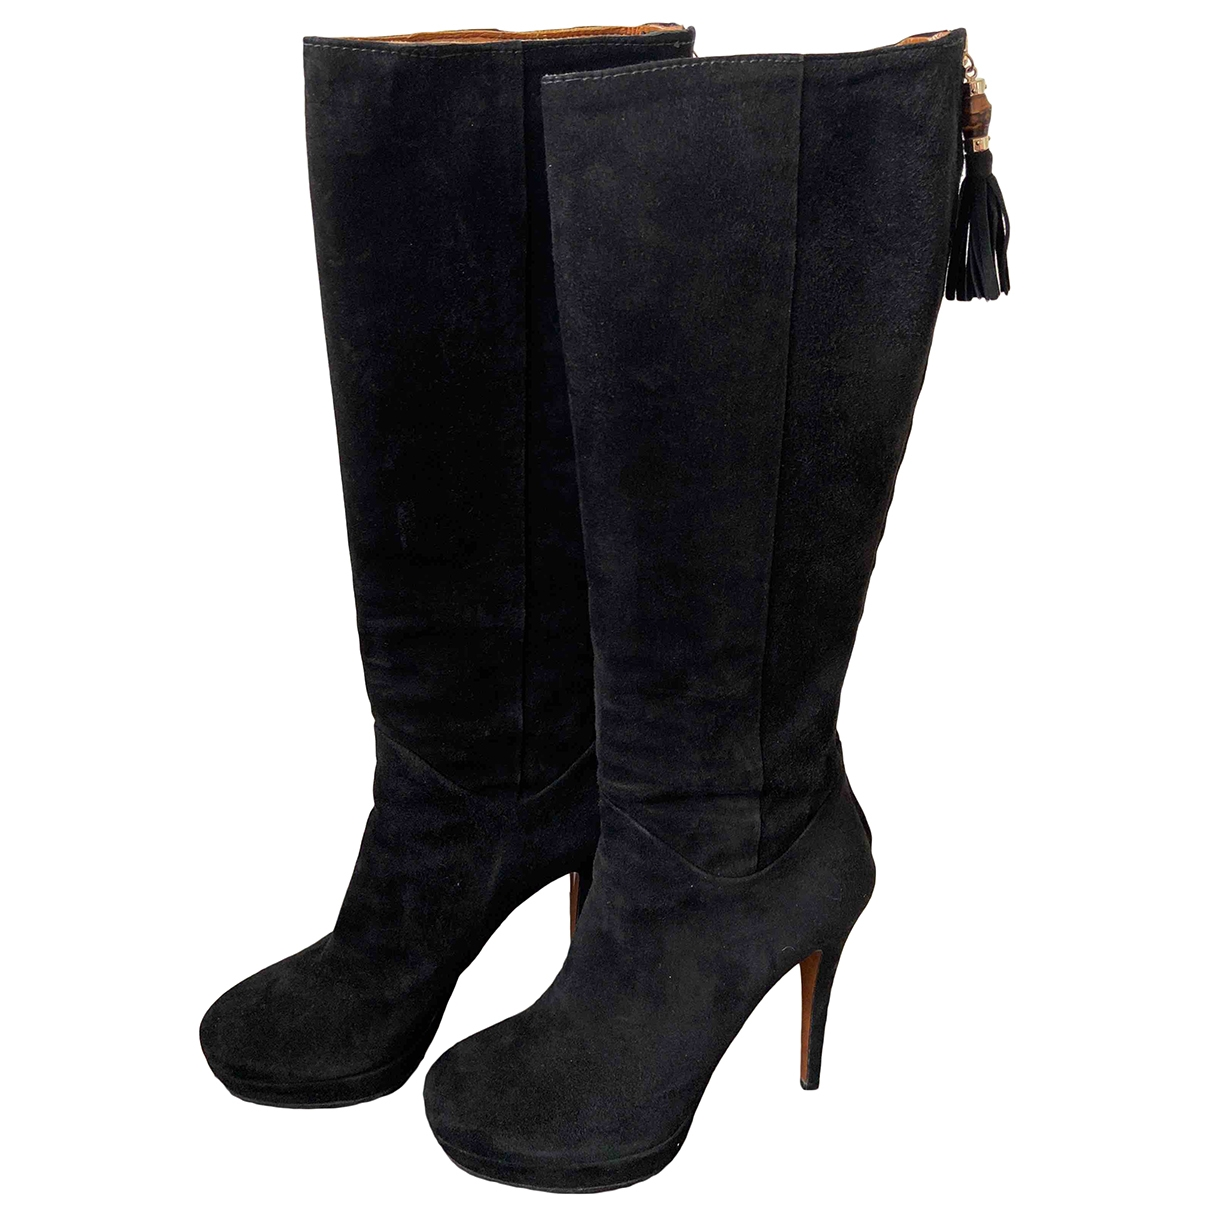 Gucci \N Black Suede Boots for Women 37.5 IT